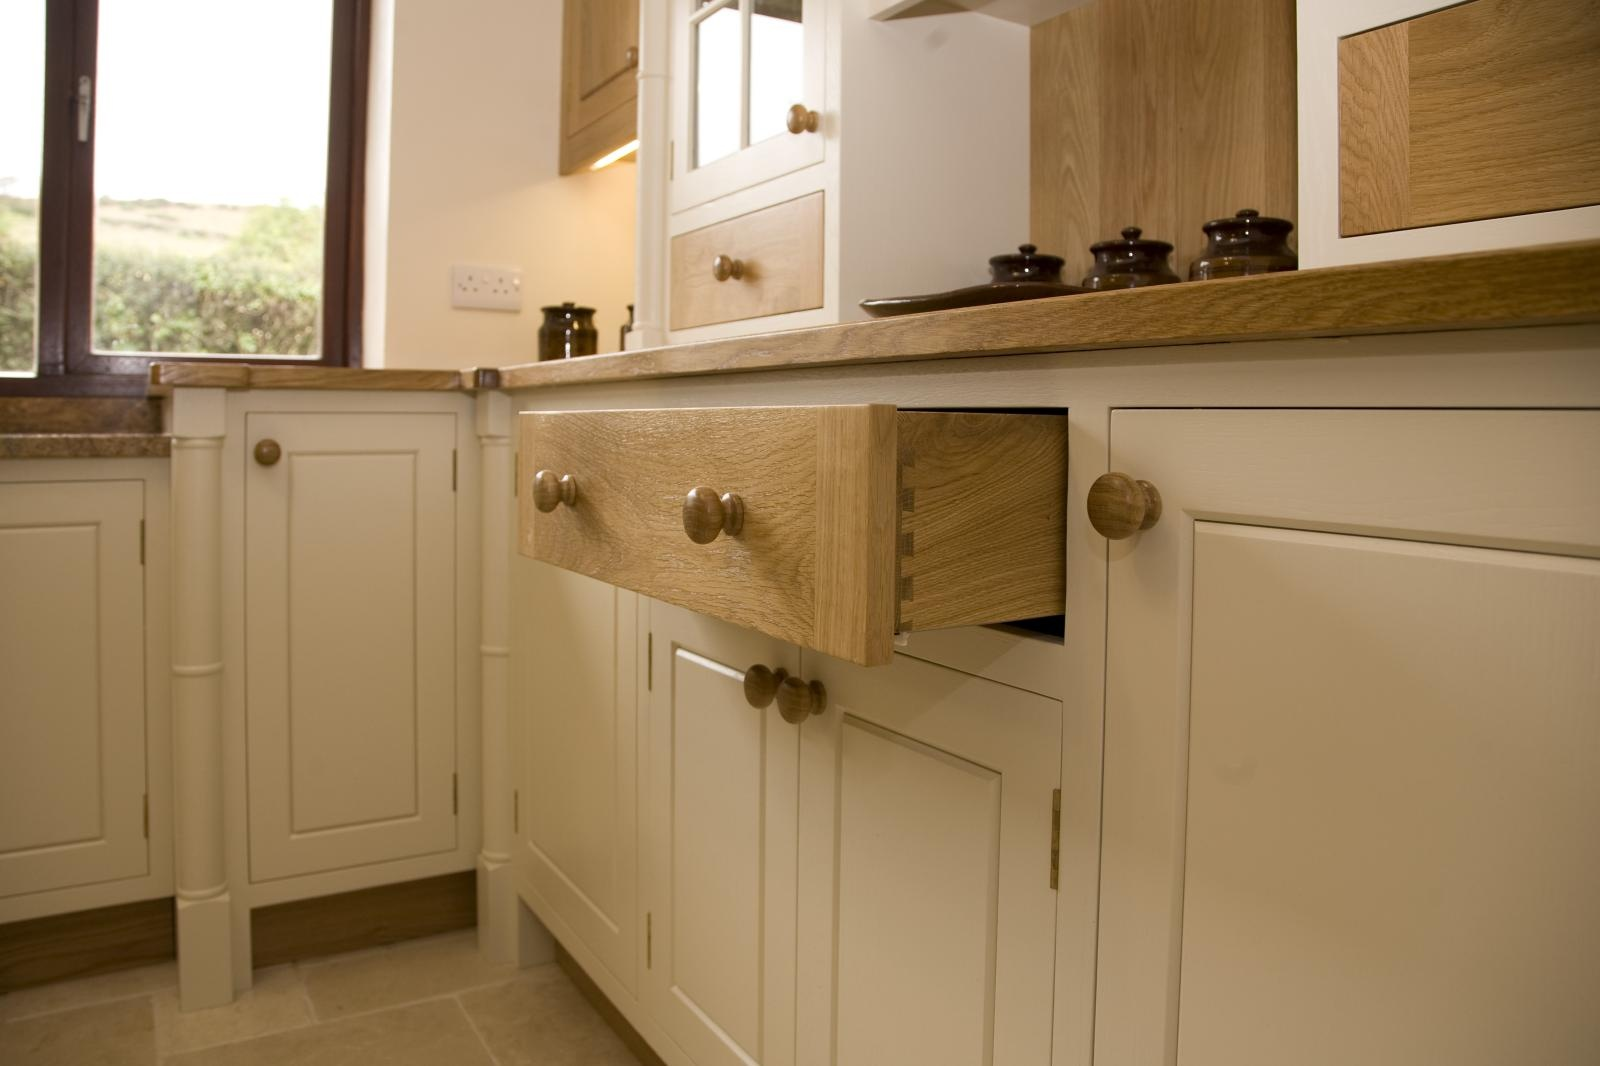 Painted Oak Kitchen Llanrhystud Mark Stone 39 S Welsh Kitchens Bespoke Kitchens And Furnuture